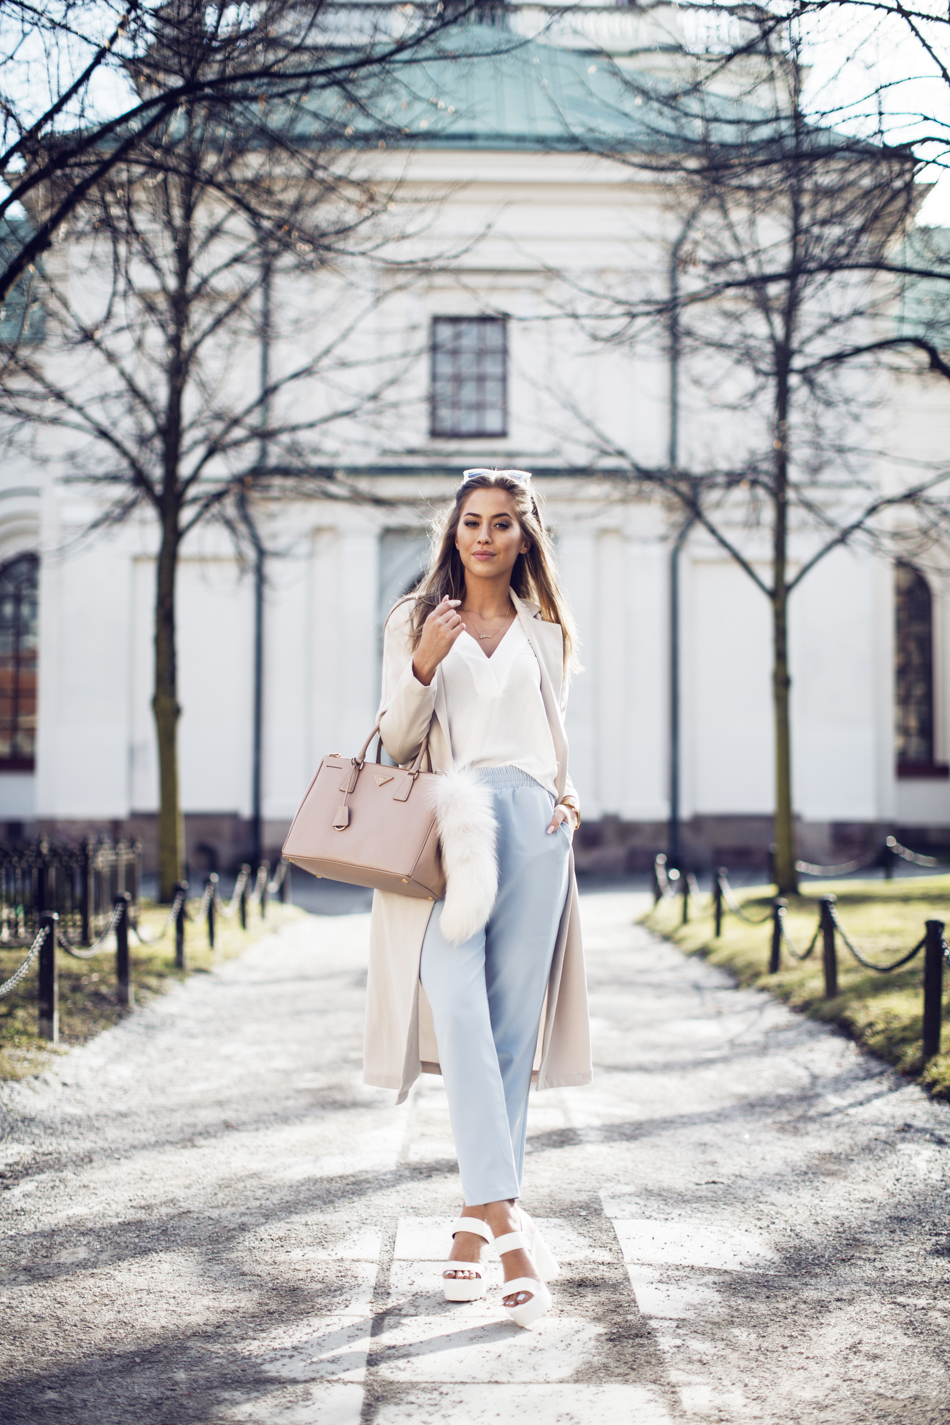 Just The Design: Kenza Zouiten is wearing a creme Ginatricot coat and blouse with baby blue high waisted trousers and white NYL heels